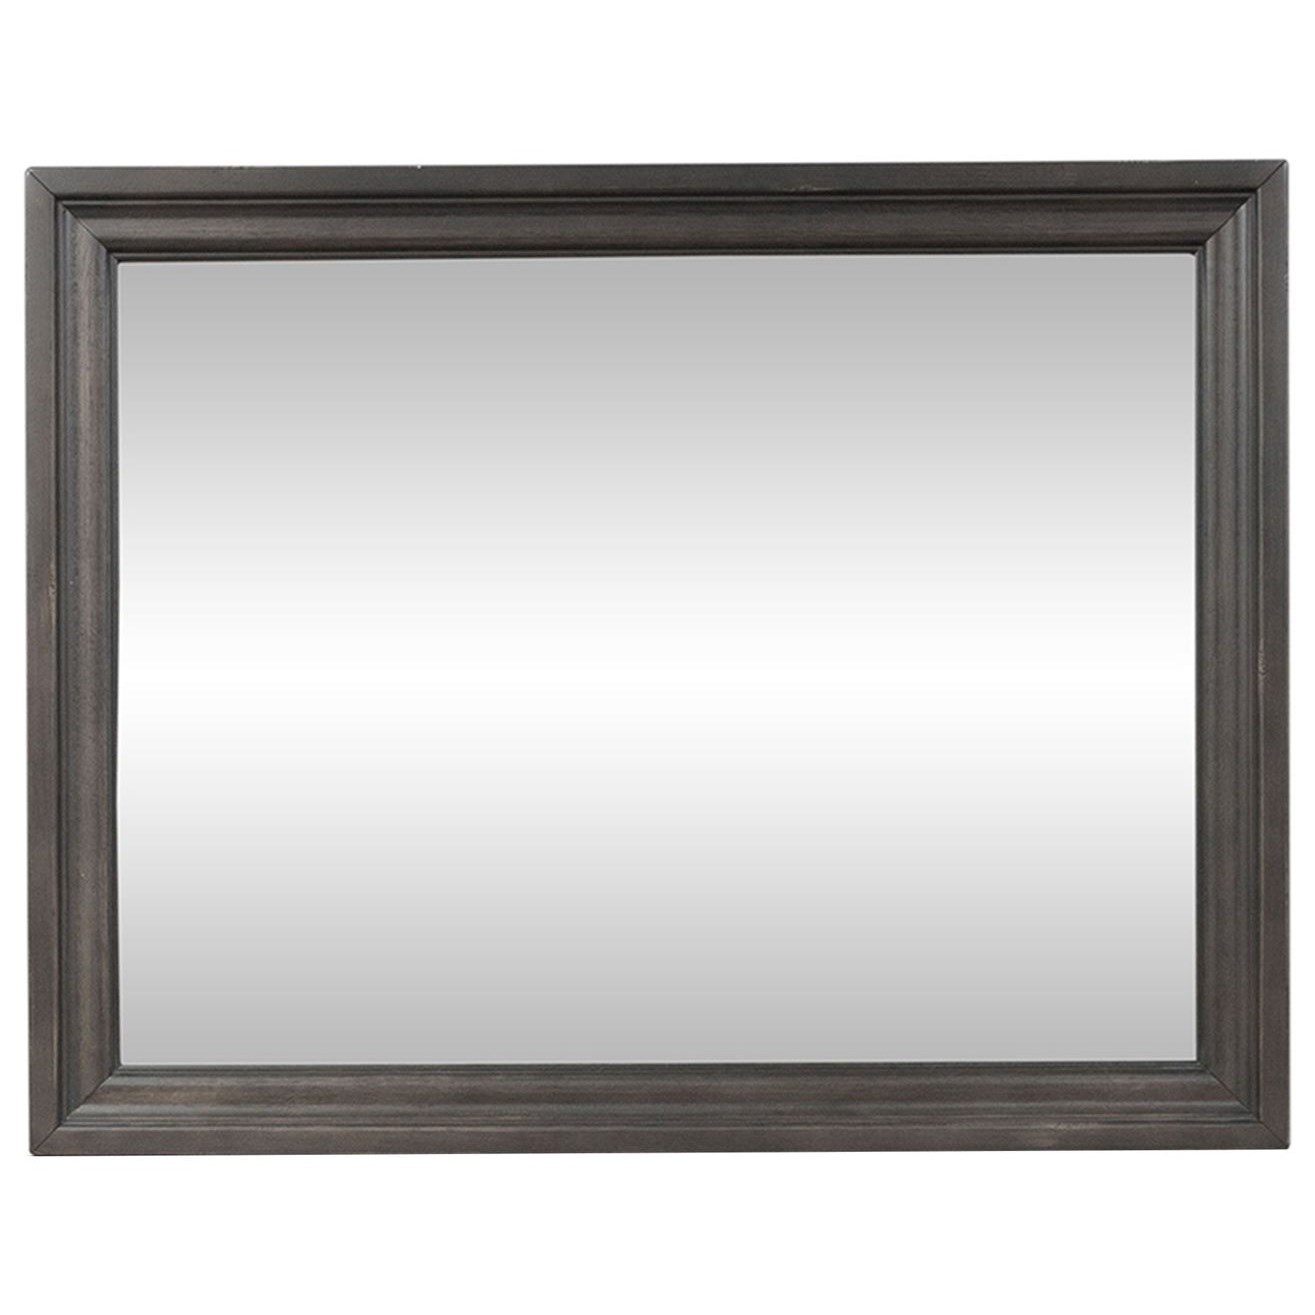 Harvest Home Mirror by Libby at Walker's Furniture